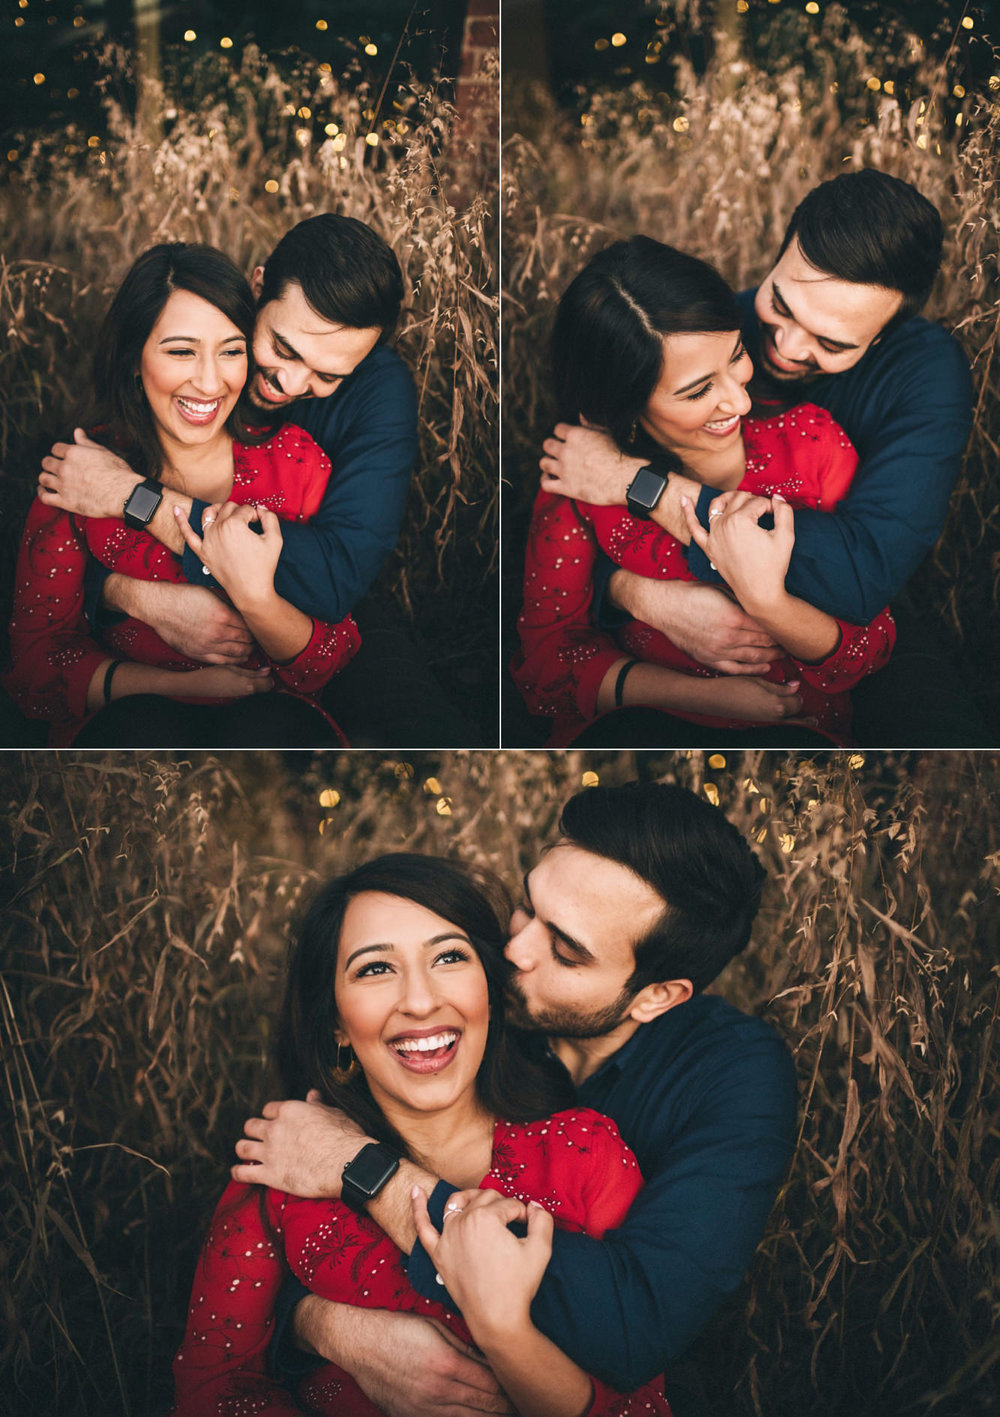 Nulu-Winter-Engagement-Session-By-Kentucky-Wedding-Photographer-Sarah-Katherine-Davis-Photography-13.jpg